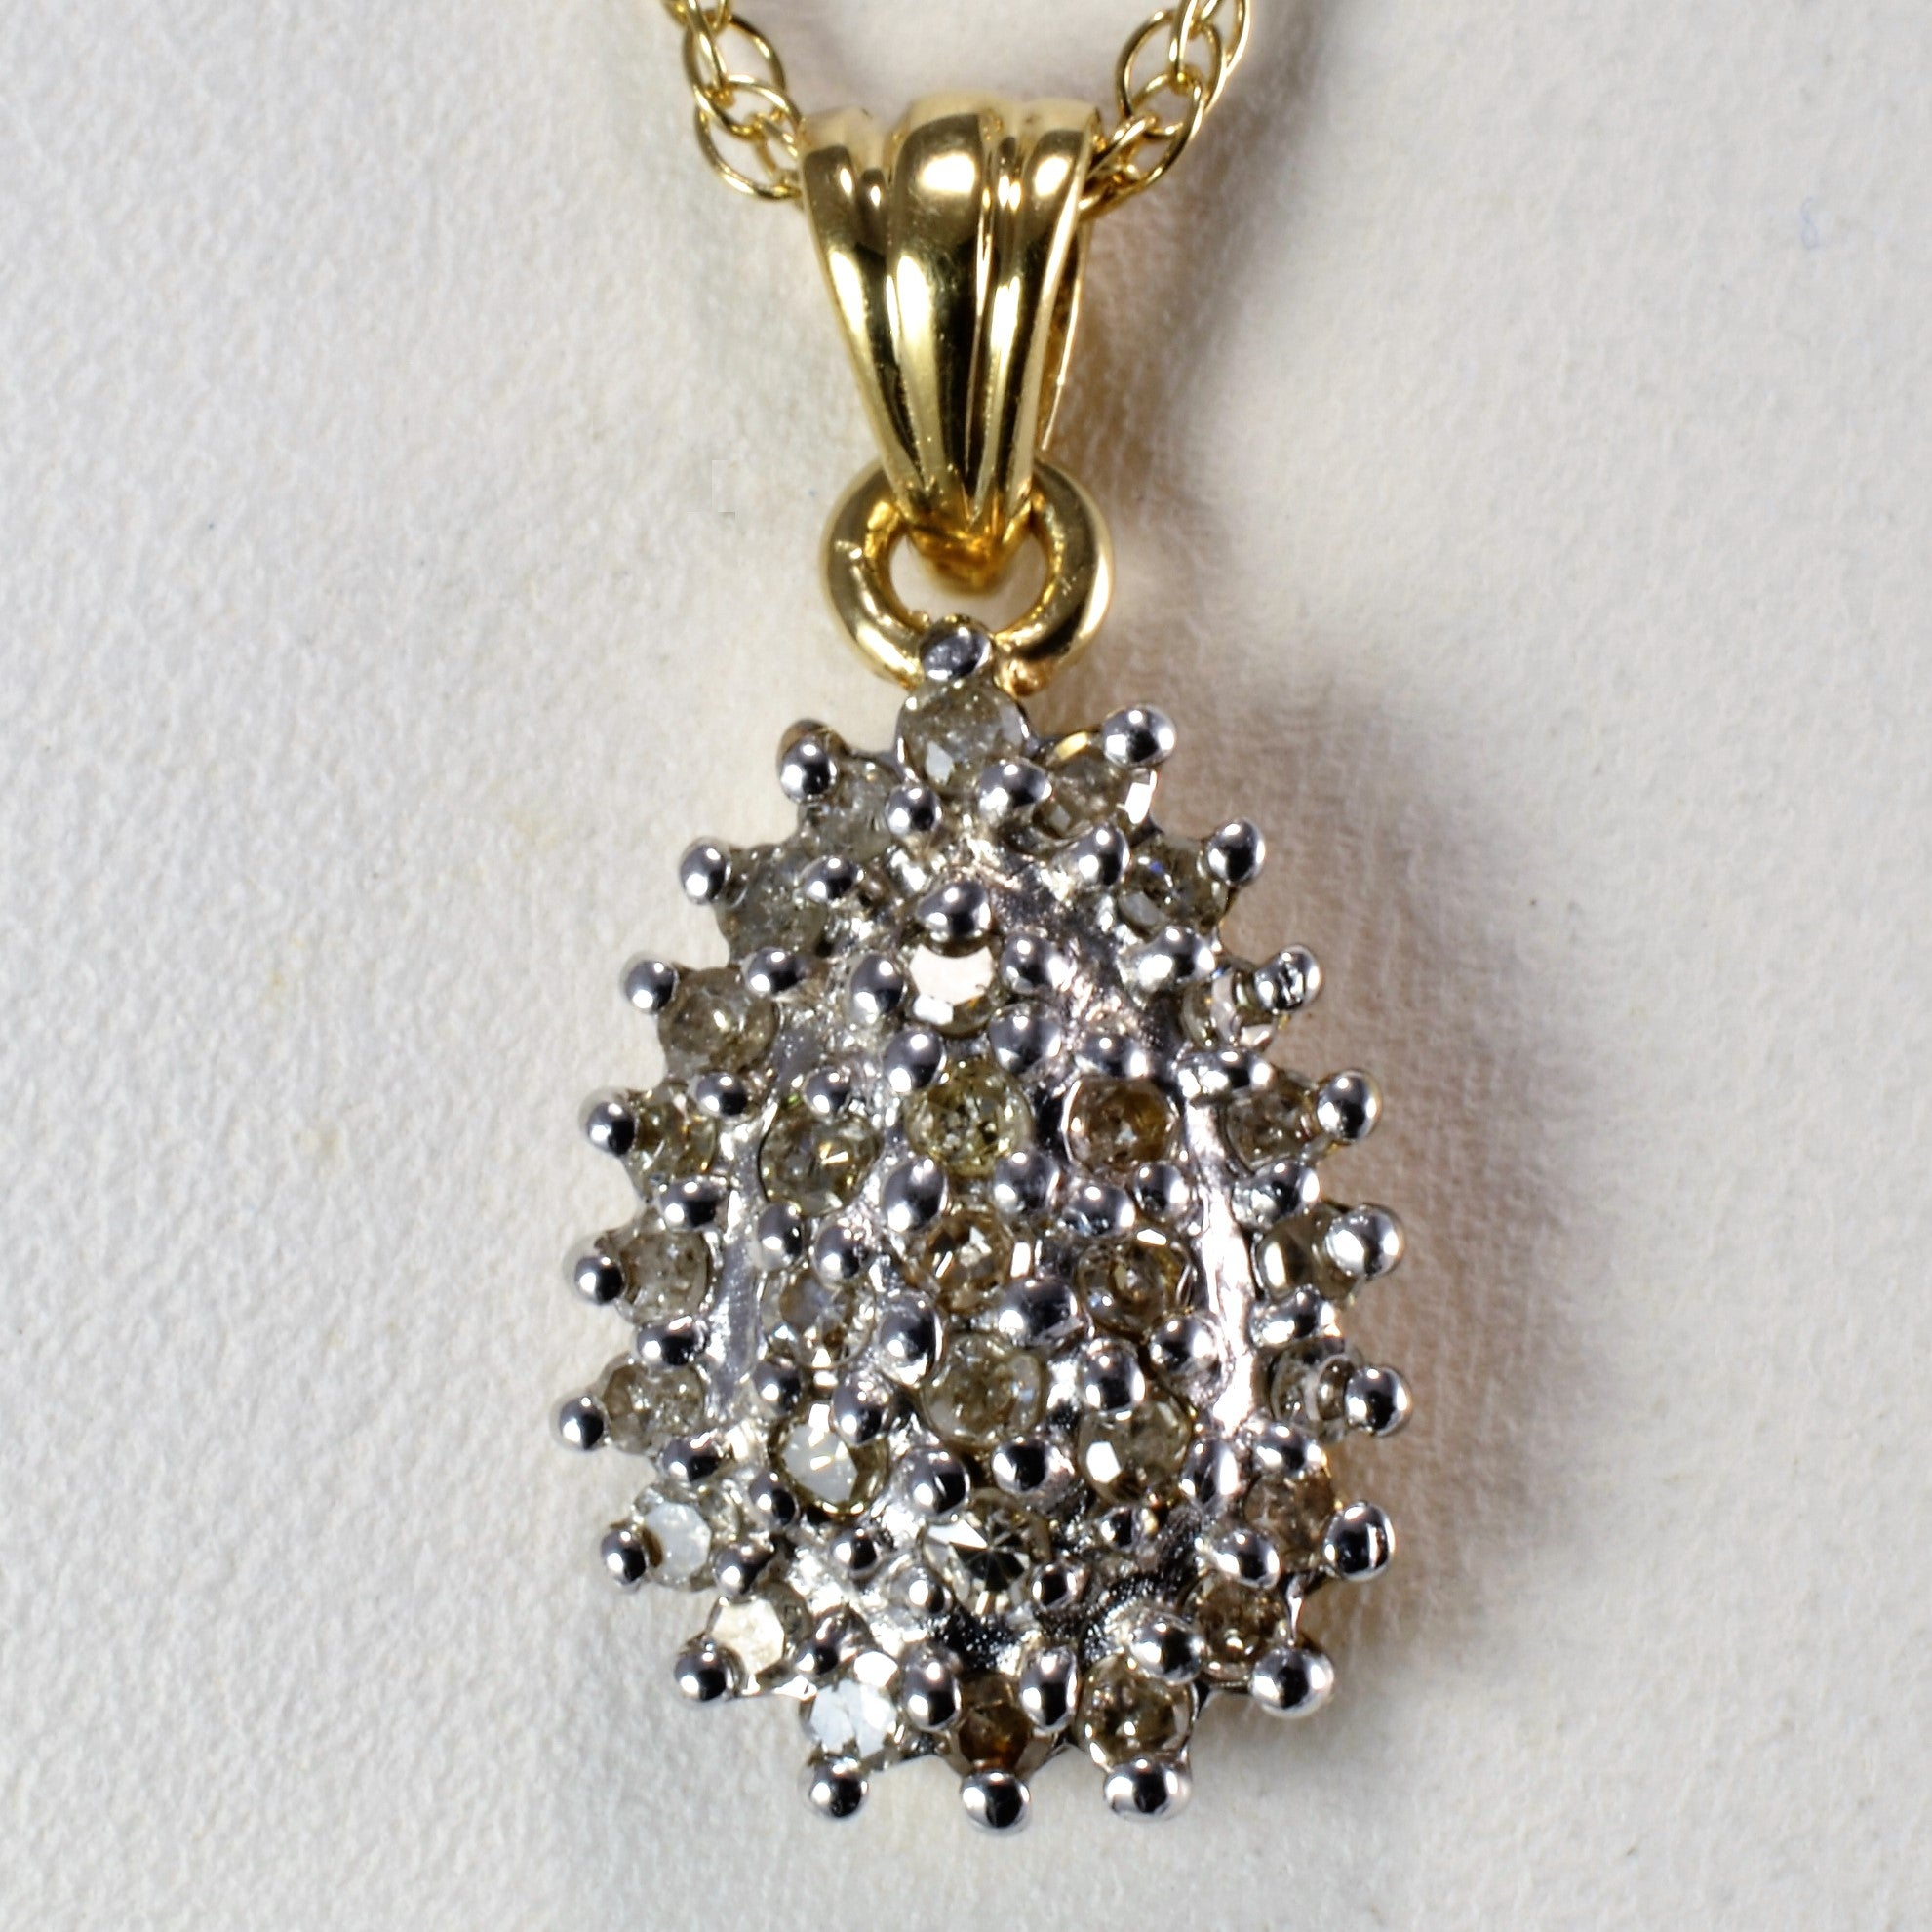 Tear Drop Design Cluster Diamond Pendant Necklace | 0.16 ctw, 20''|